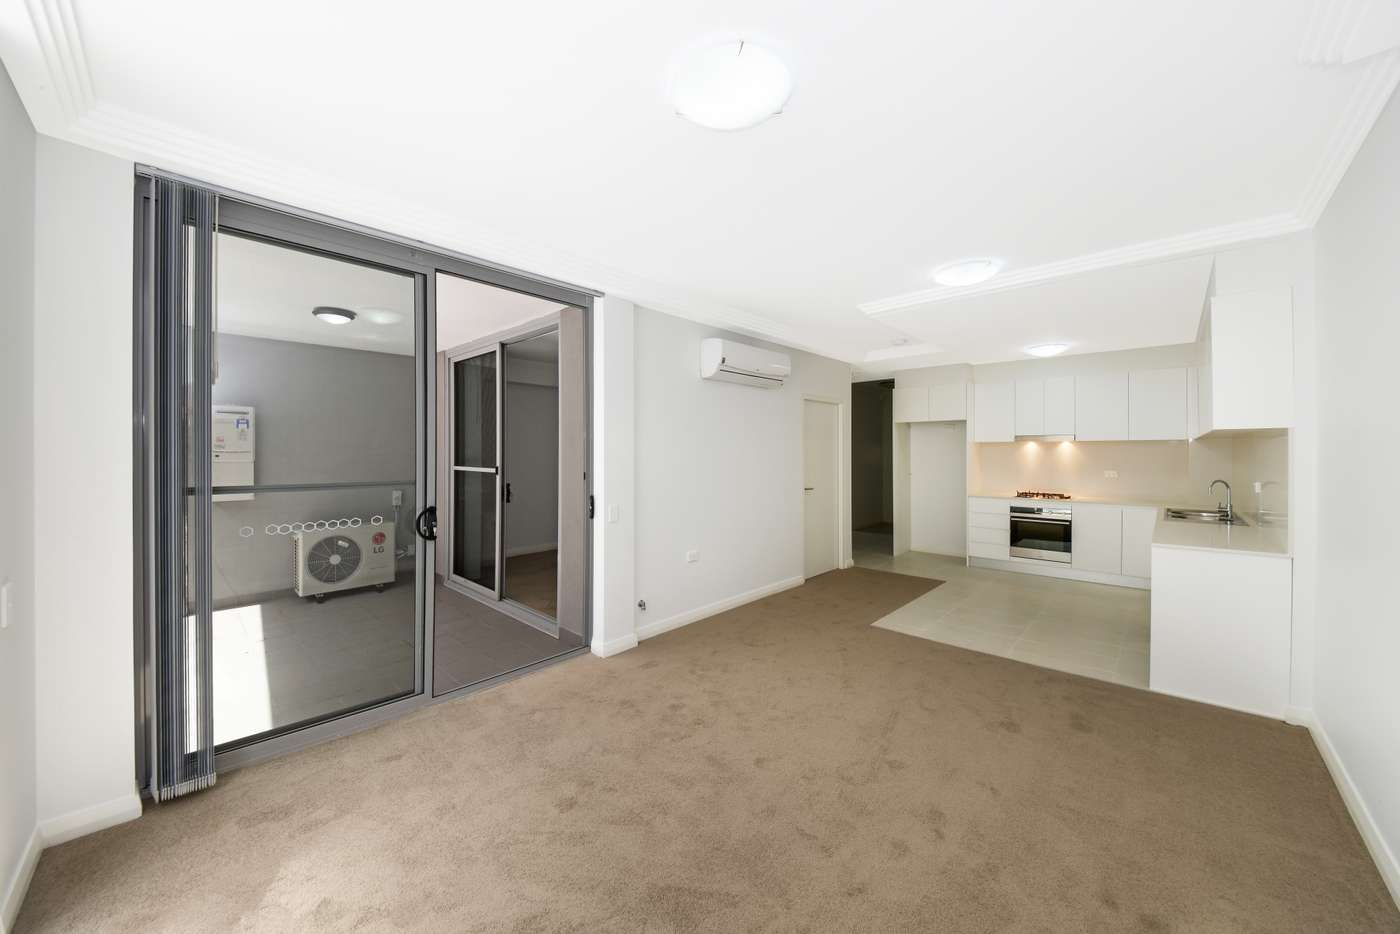 Main view of Homely apartment listing, 7/285-287 Condamine Street, Manly Vale NSW 2093